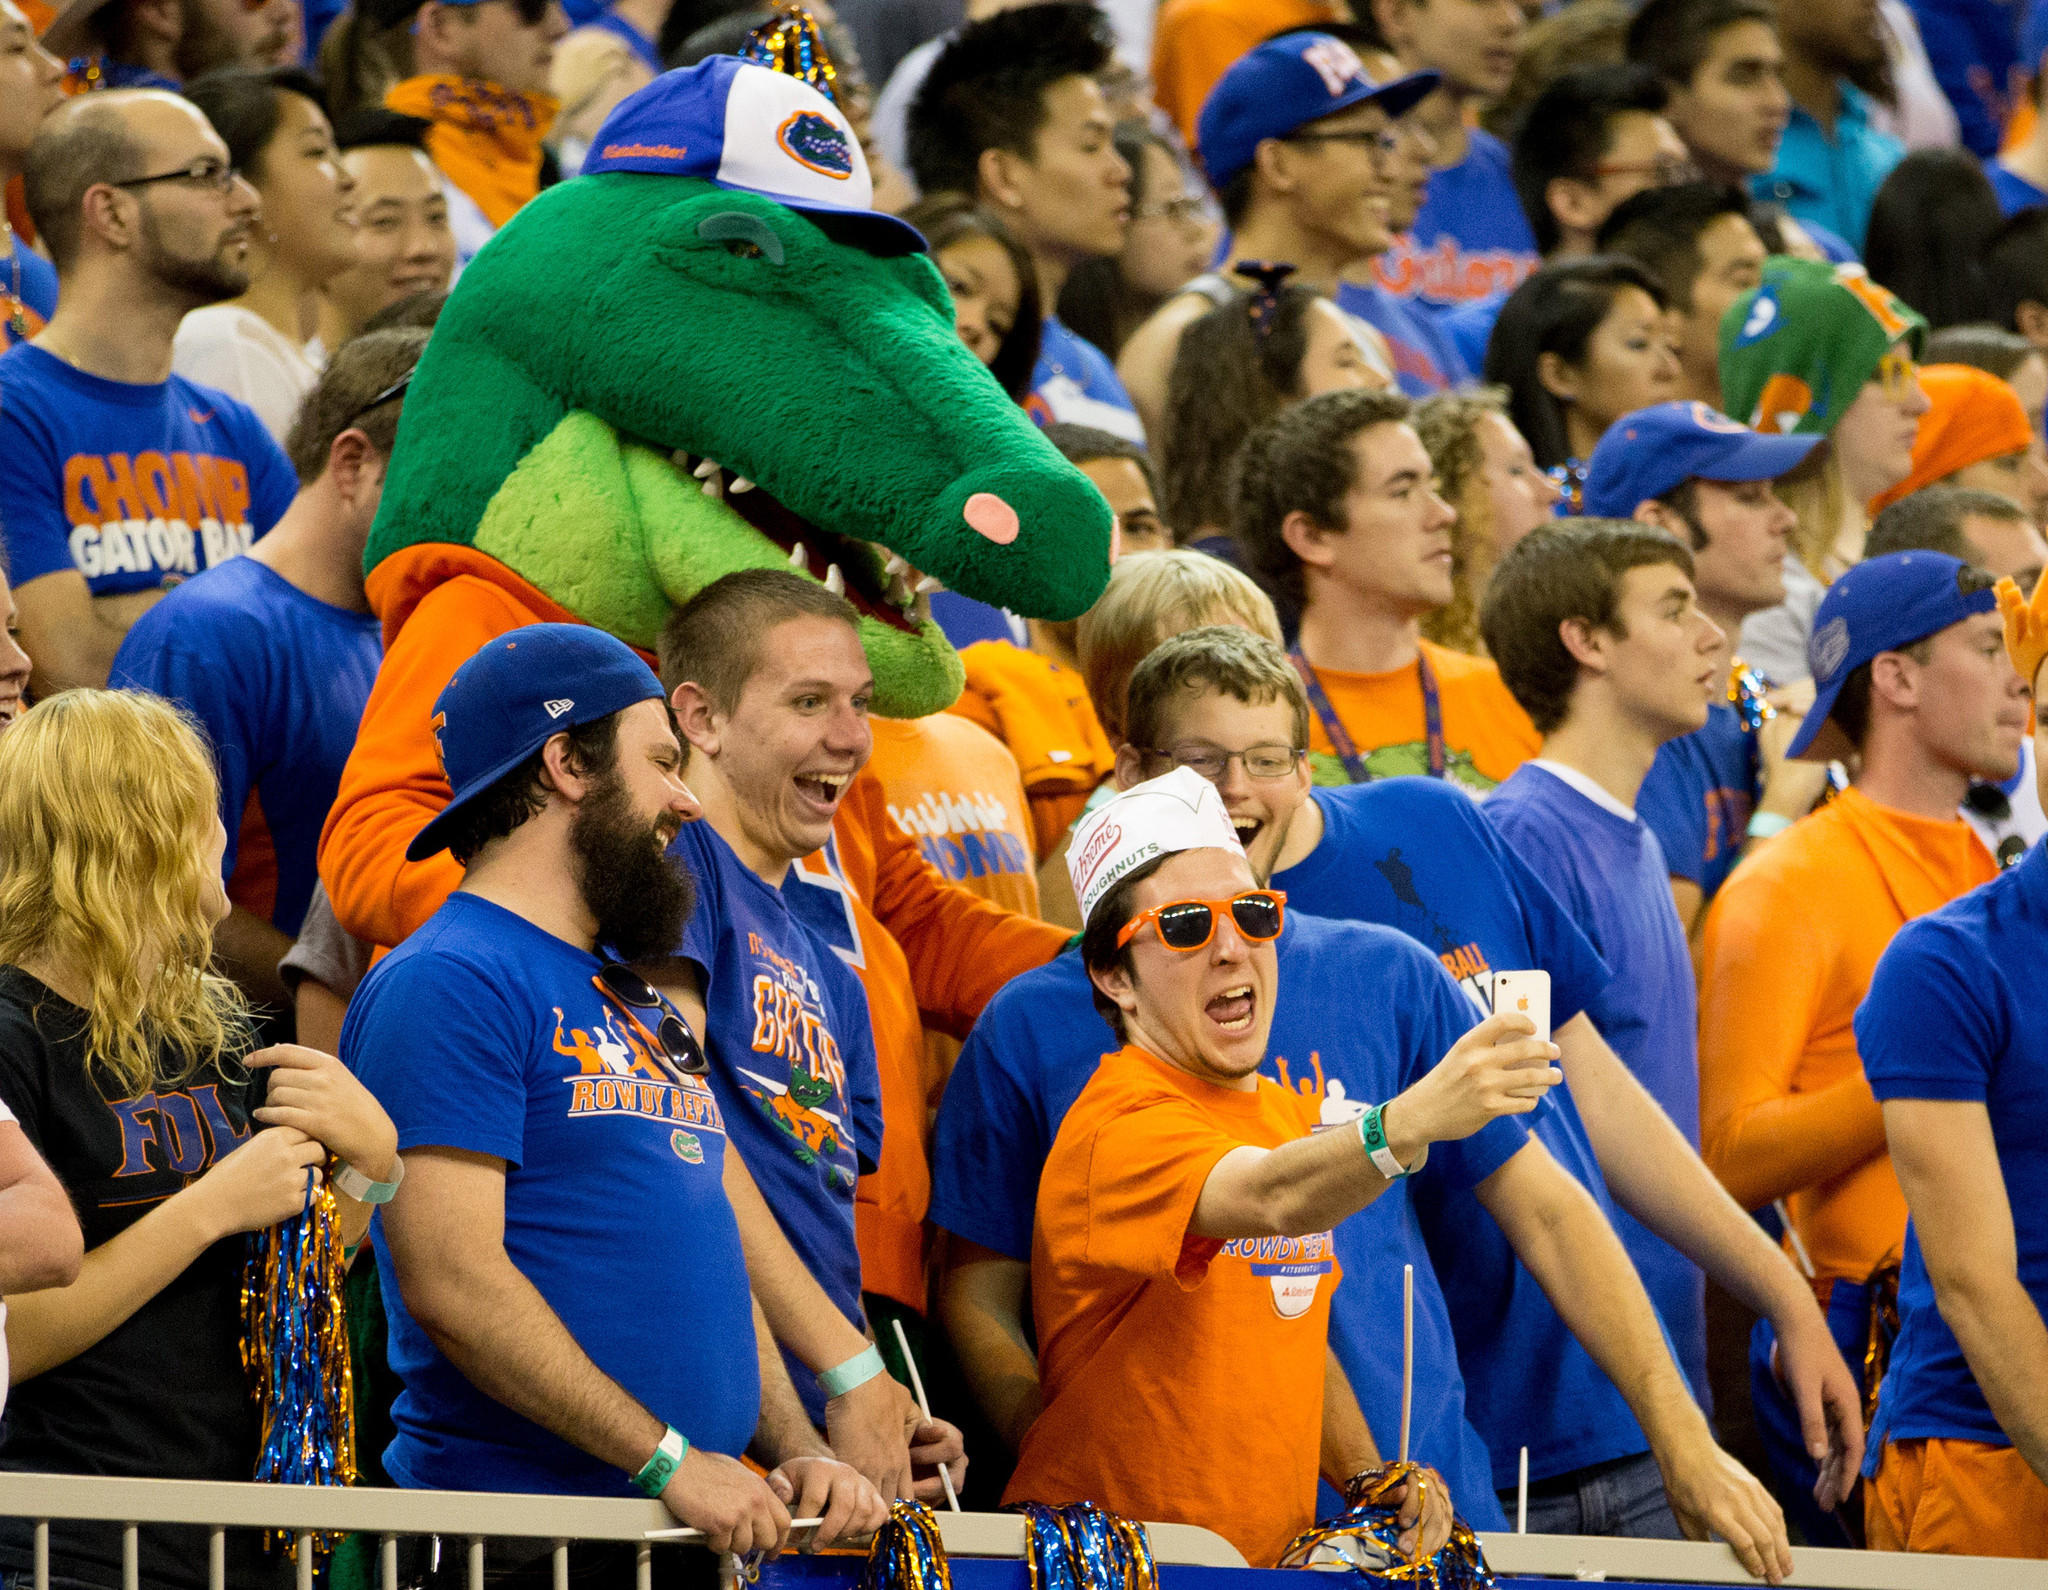 Florida Gators fans take a selfie with Albert the mascot during the second half of the game against the LSU Tigers at the Stephen C. O'Connell Center.